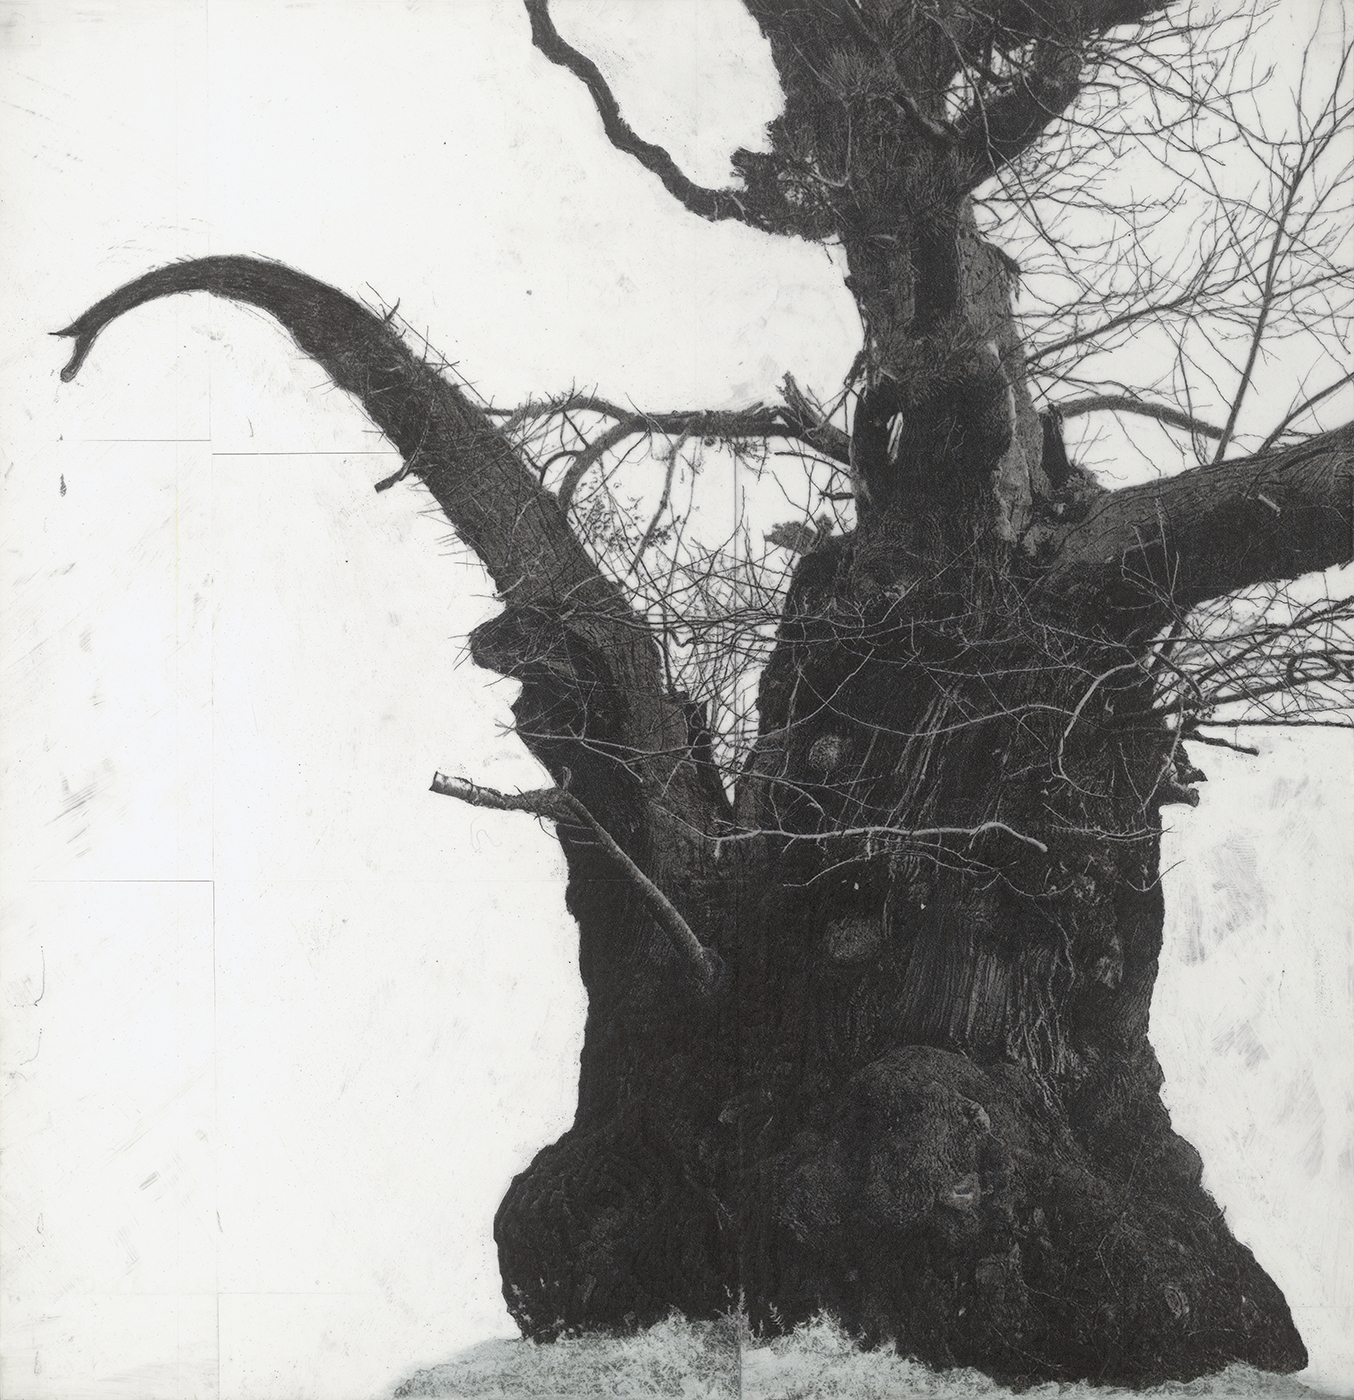 Patrick Van Caeckenbergh - Drawing of old trees on wintry days during 2007-2014 _C, 2007-2014